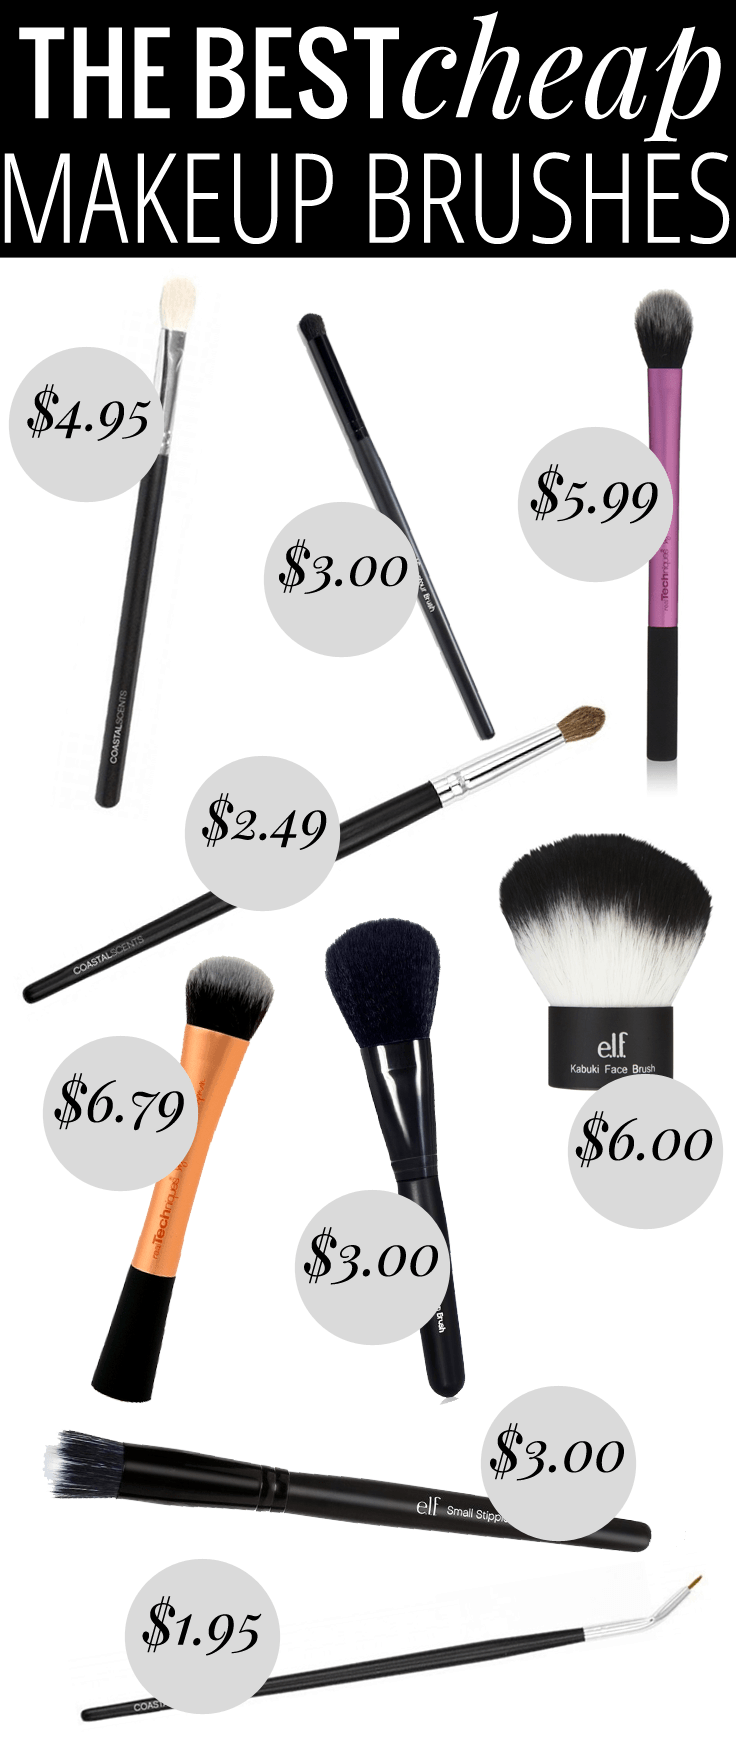 The Best Cheap Makeup Brushes - every brush youu0026#39;ll need, all for under ...